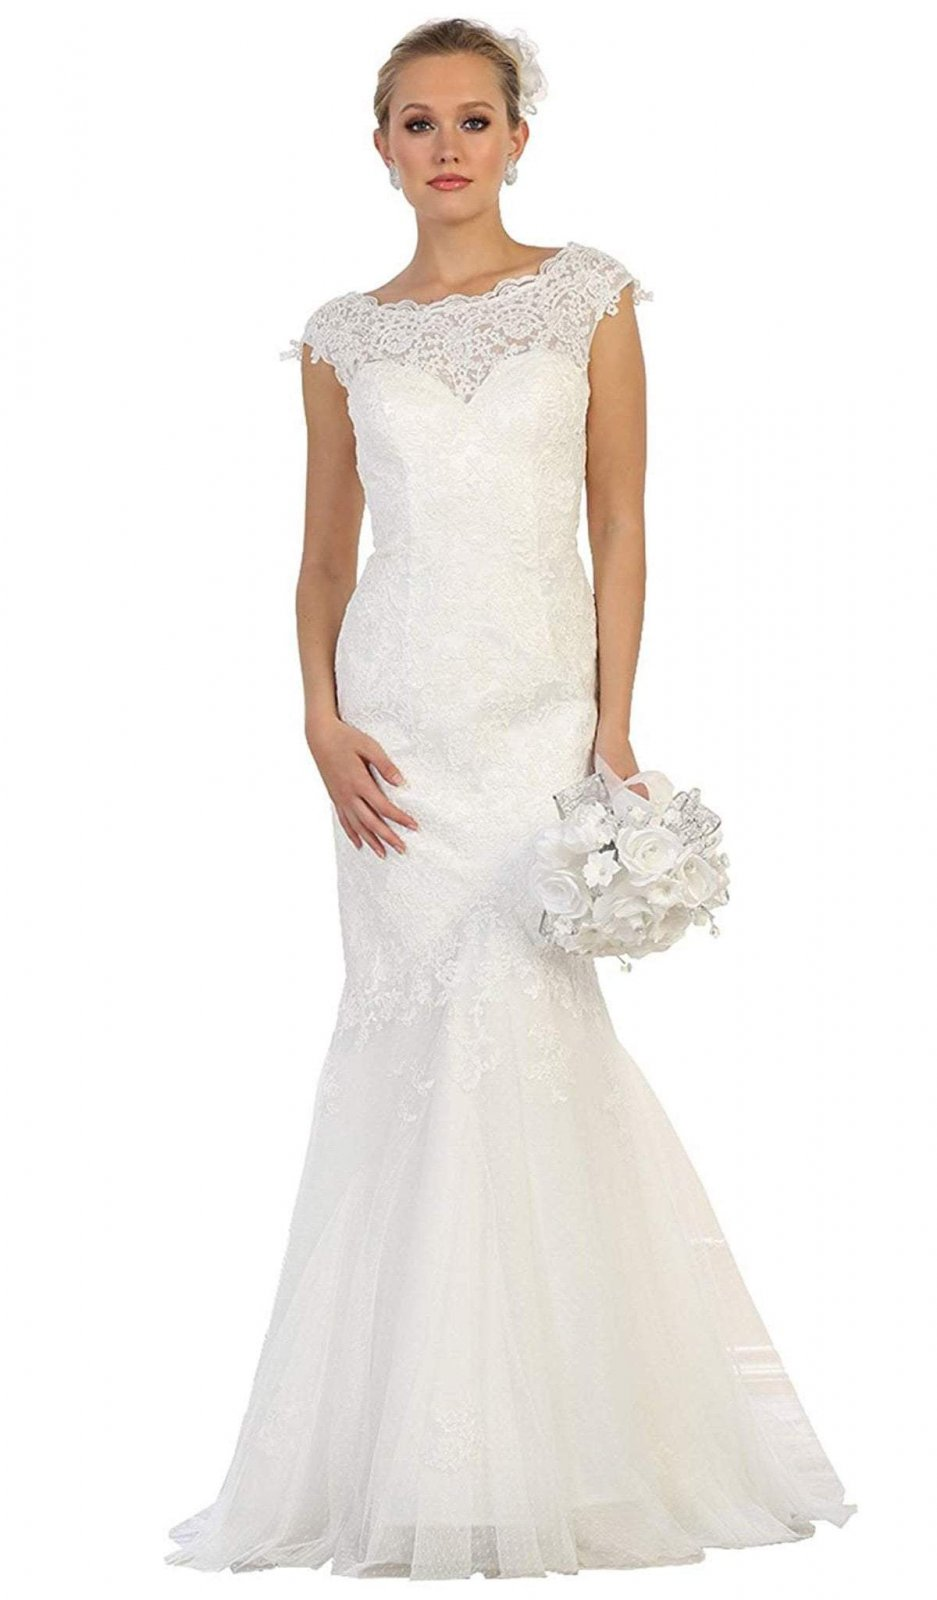 Normal Girl Size Plus Size Wedding Dress With Lace Sheer Sweetheart Bodice